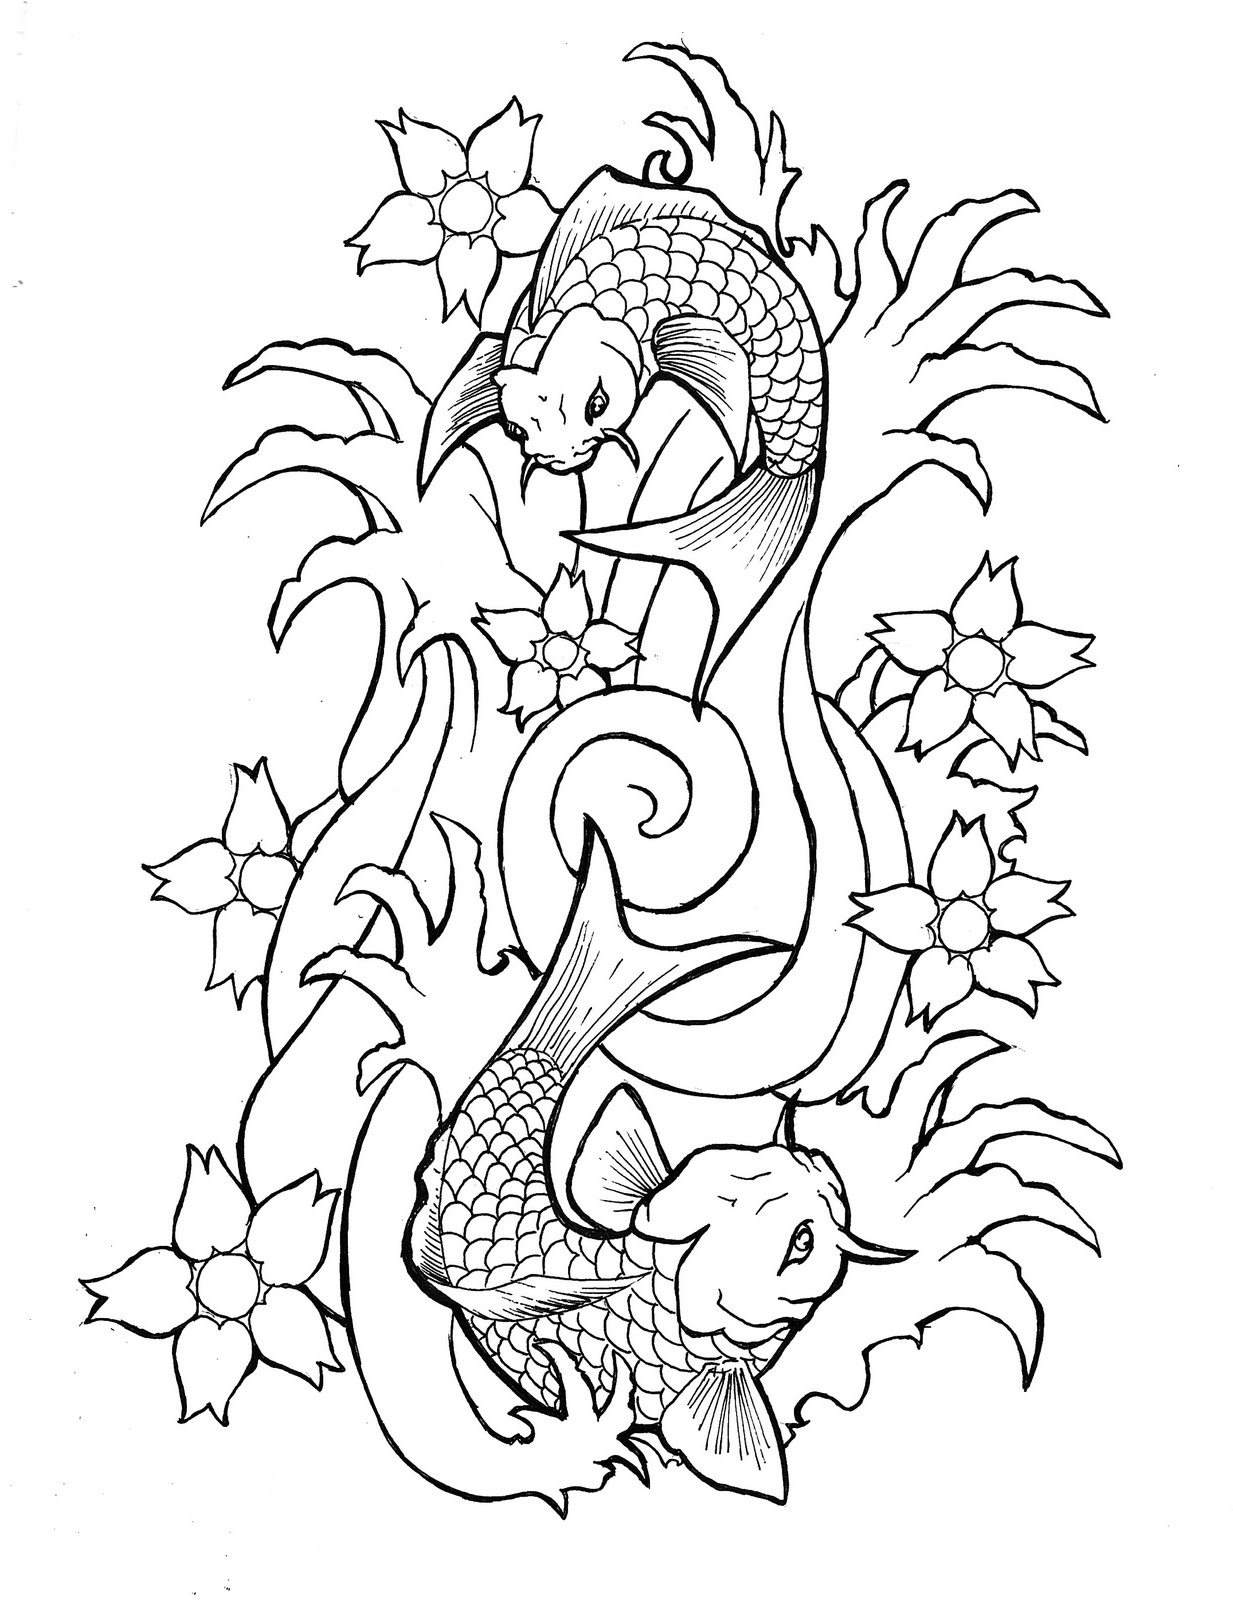 Tattoo Outlines For Girls: Portfolio: New Tattoo Flash Outlines